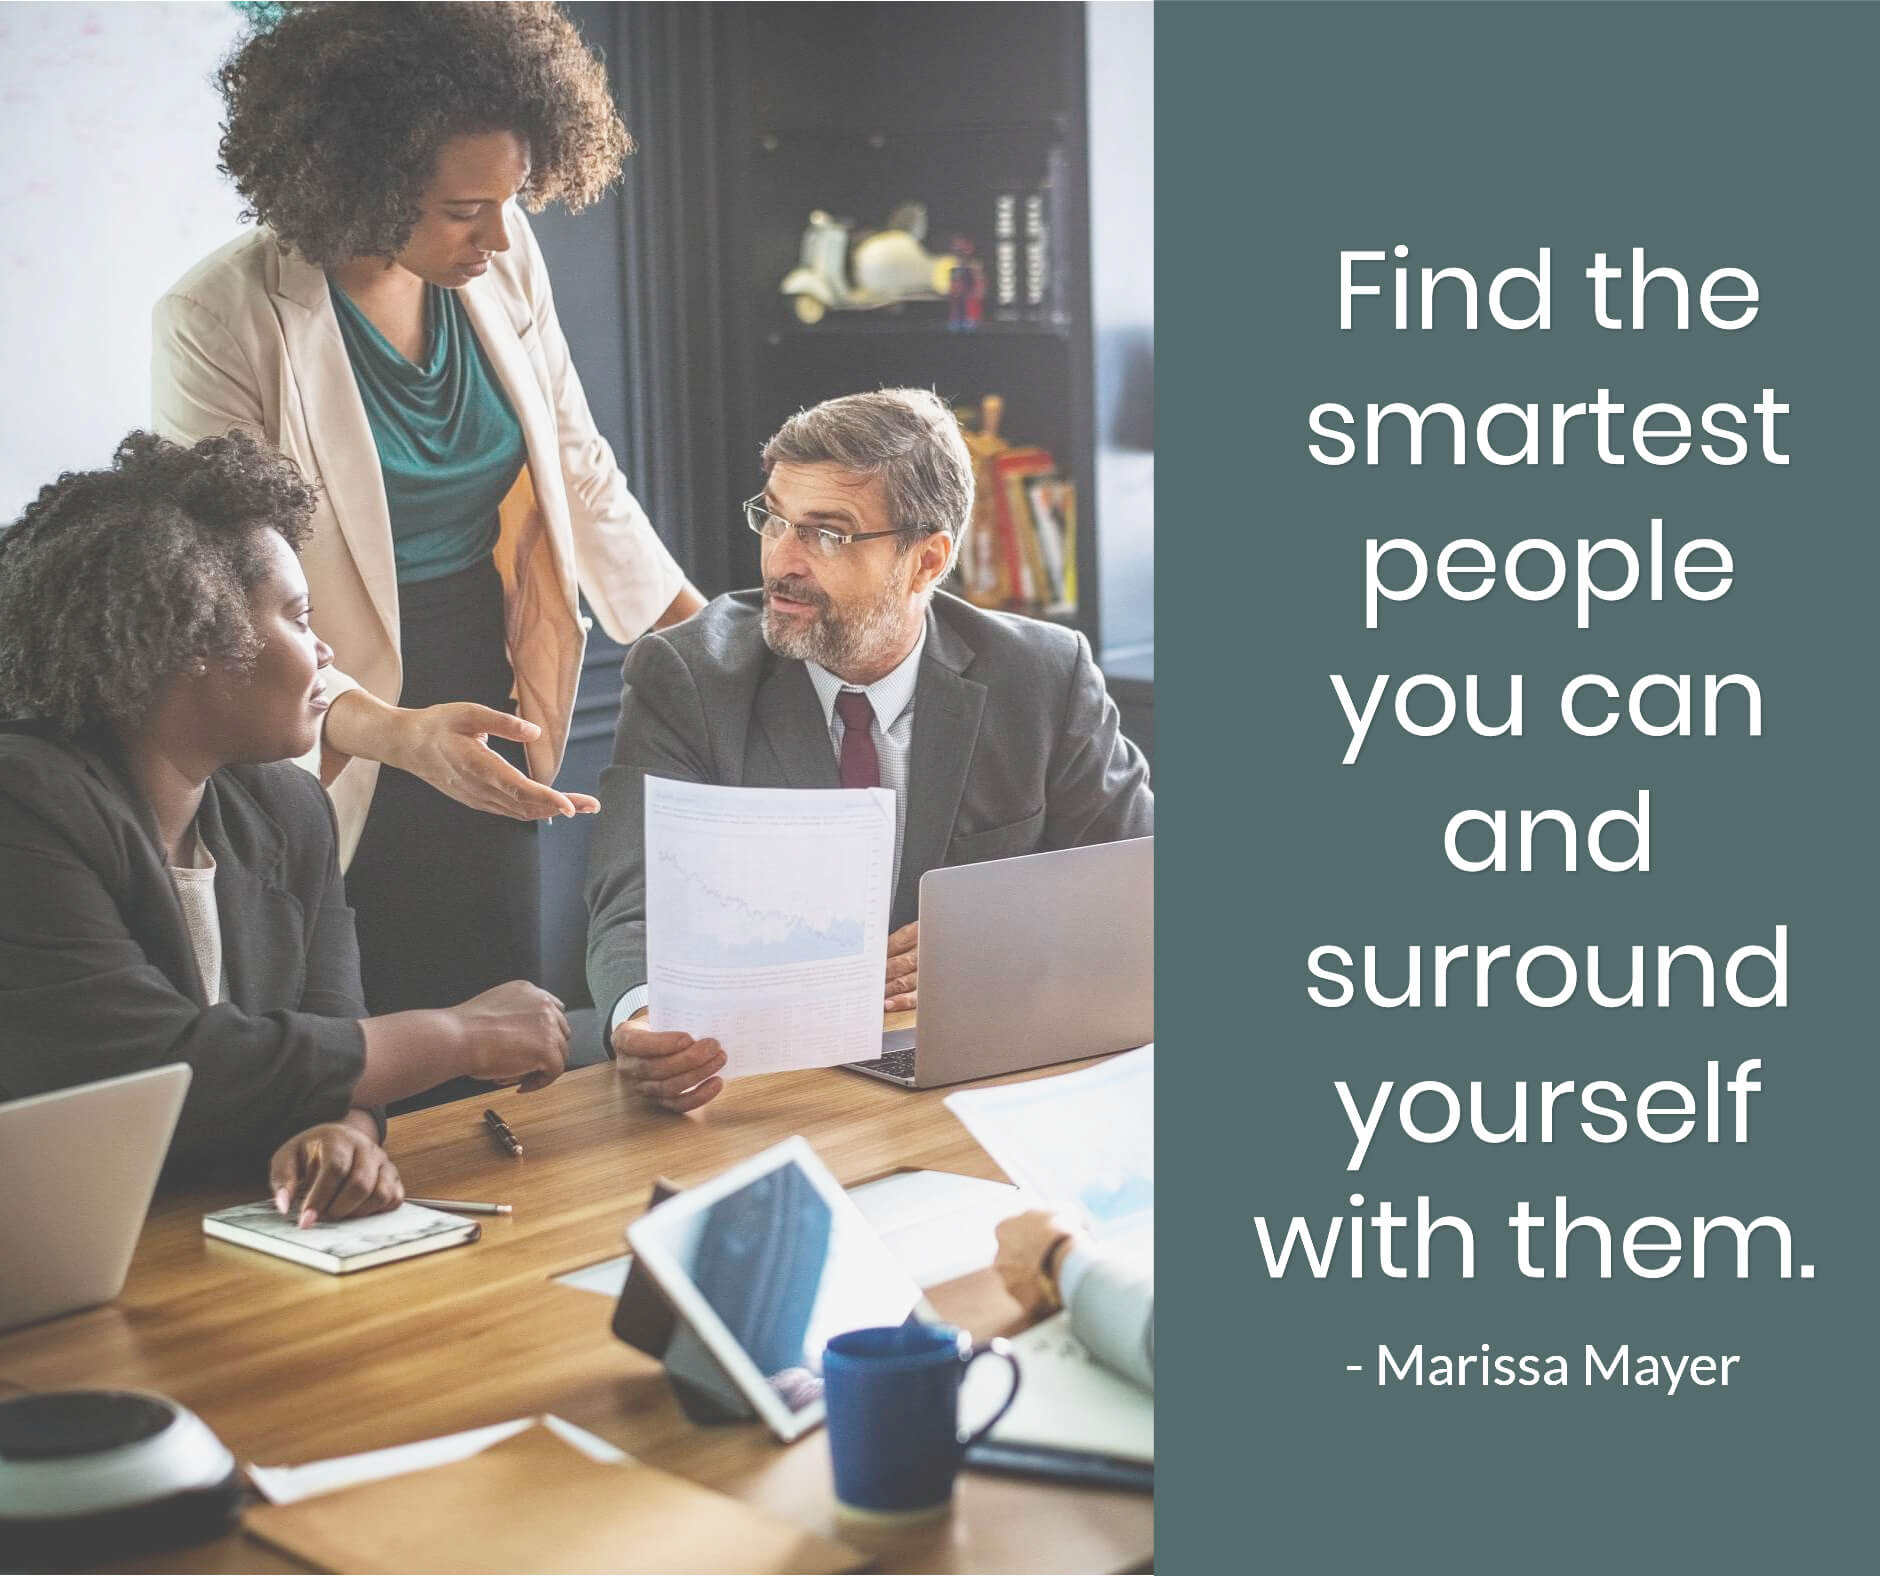 Find the smartest people you can and surround yourself with them.